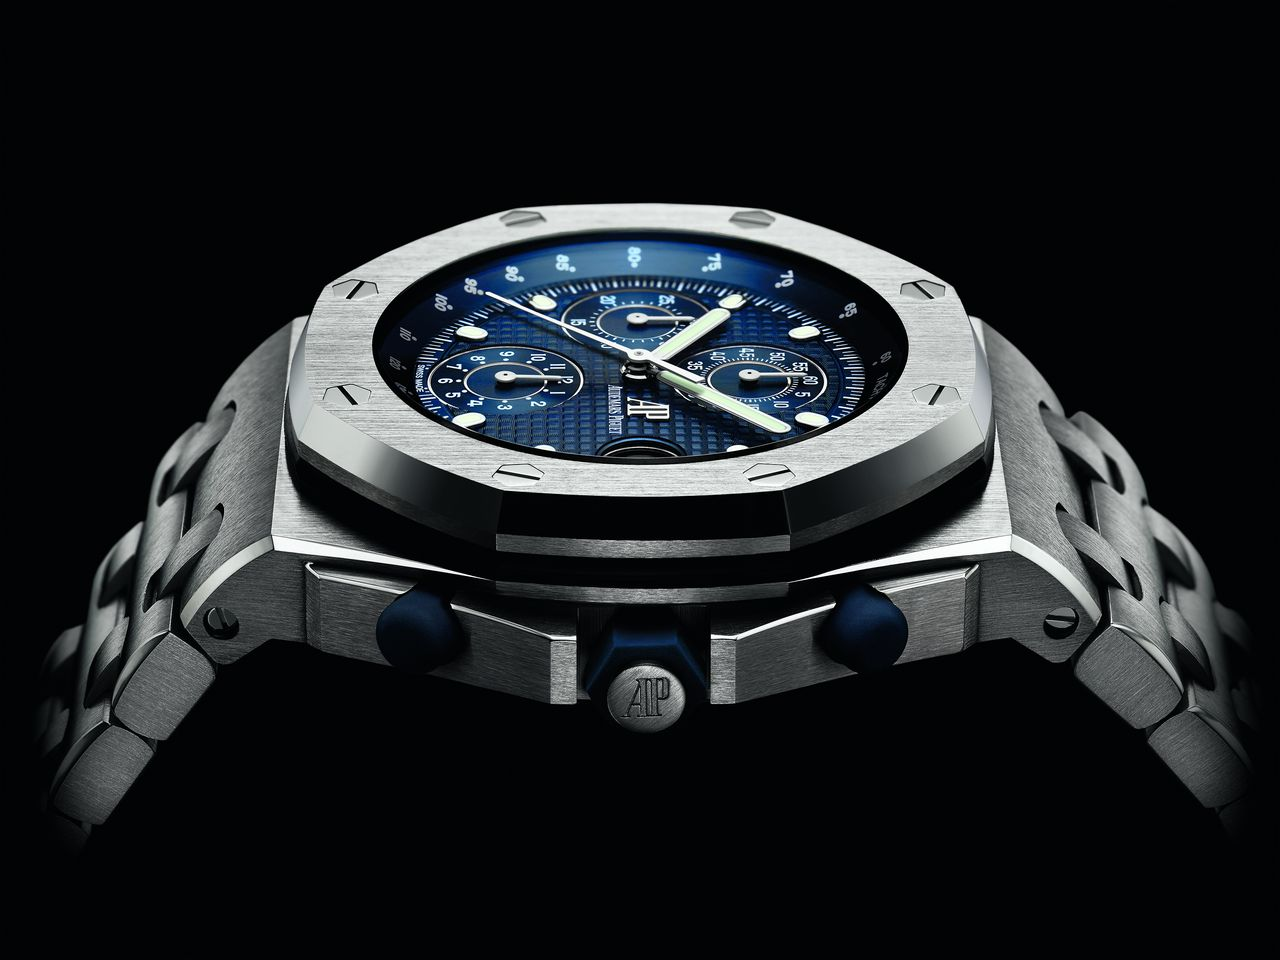 Audemars Piguet Royal Oak Offshore Chronograph Re-edition 25th Anniversary - oldalról azért látszik, hogy egy kicsit már eljárt felette az idő